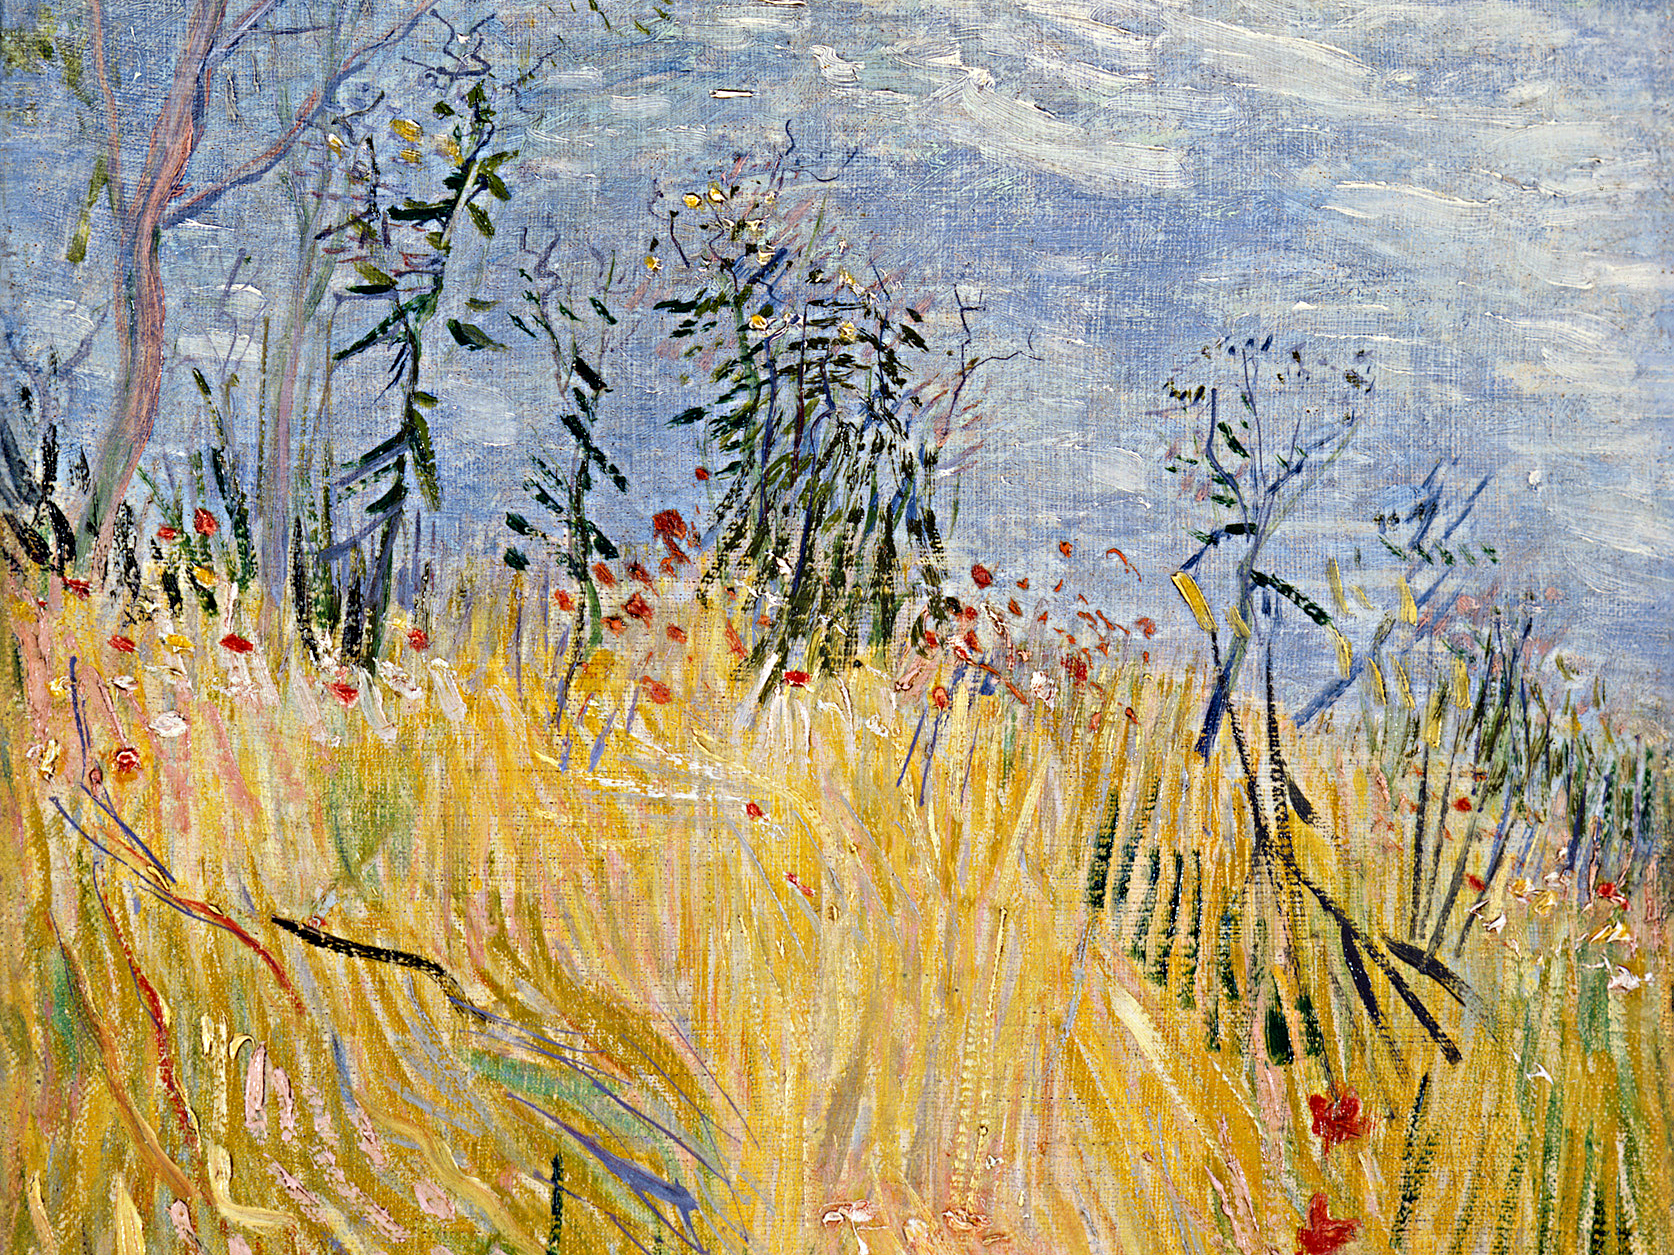 Photo: Vincent van Gogh, 'Edge of a Wheat Field with Poppies'